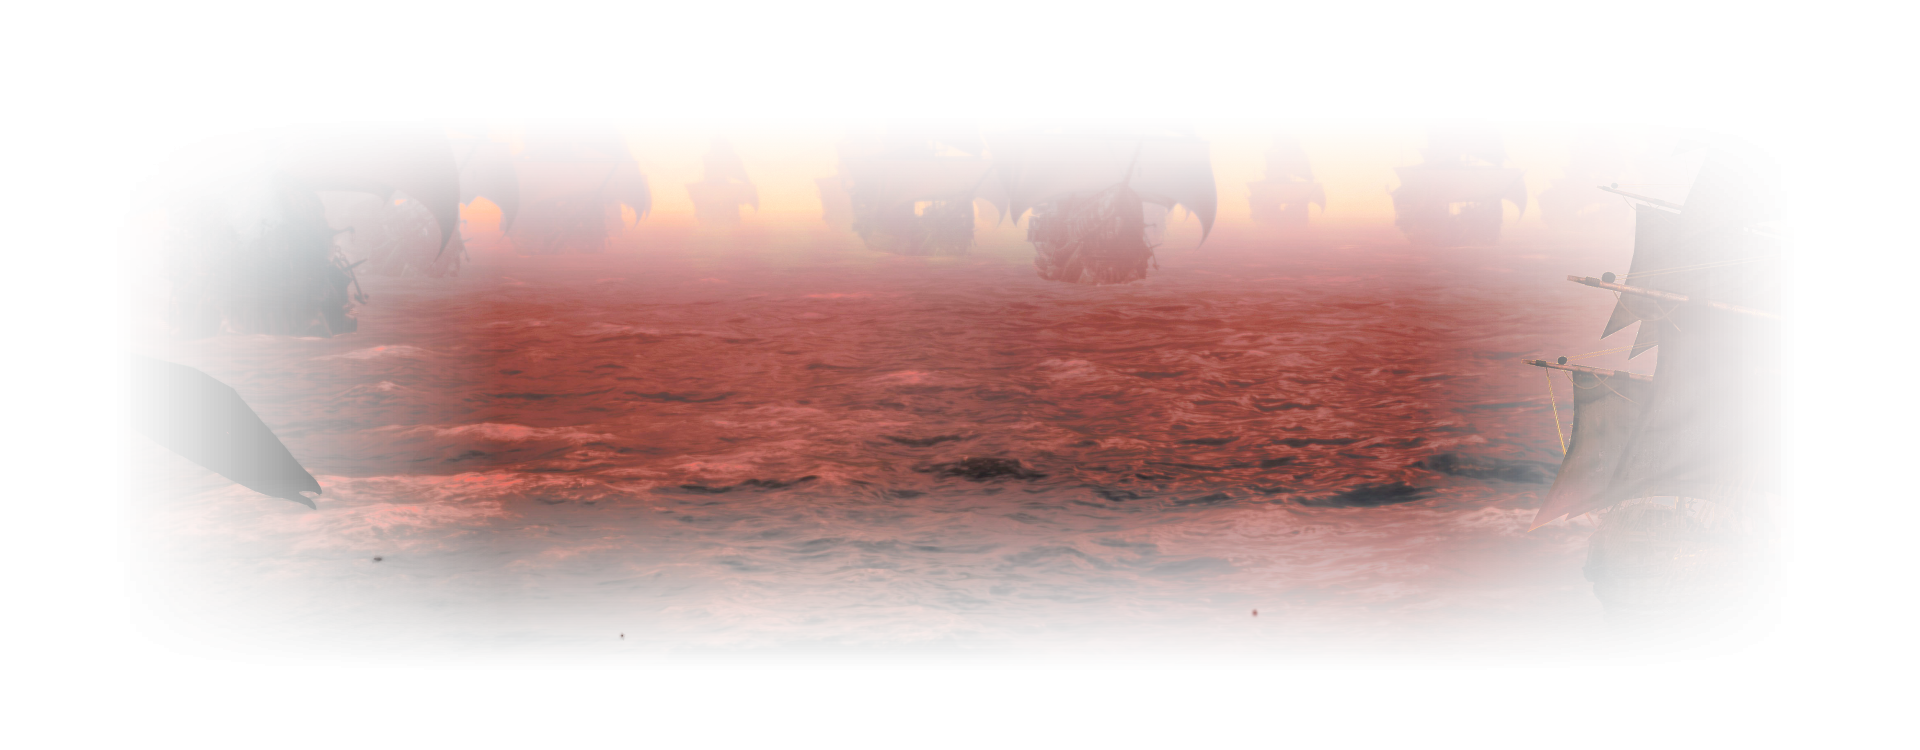 AOCG_G90_FV_FW_RR_75Hz_BACKGROUND.png